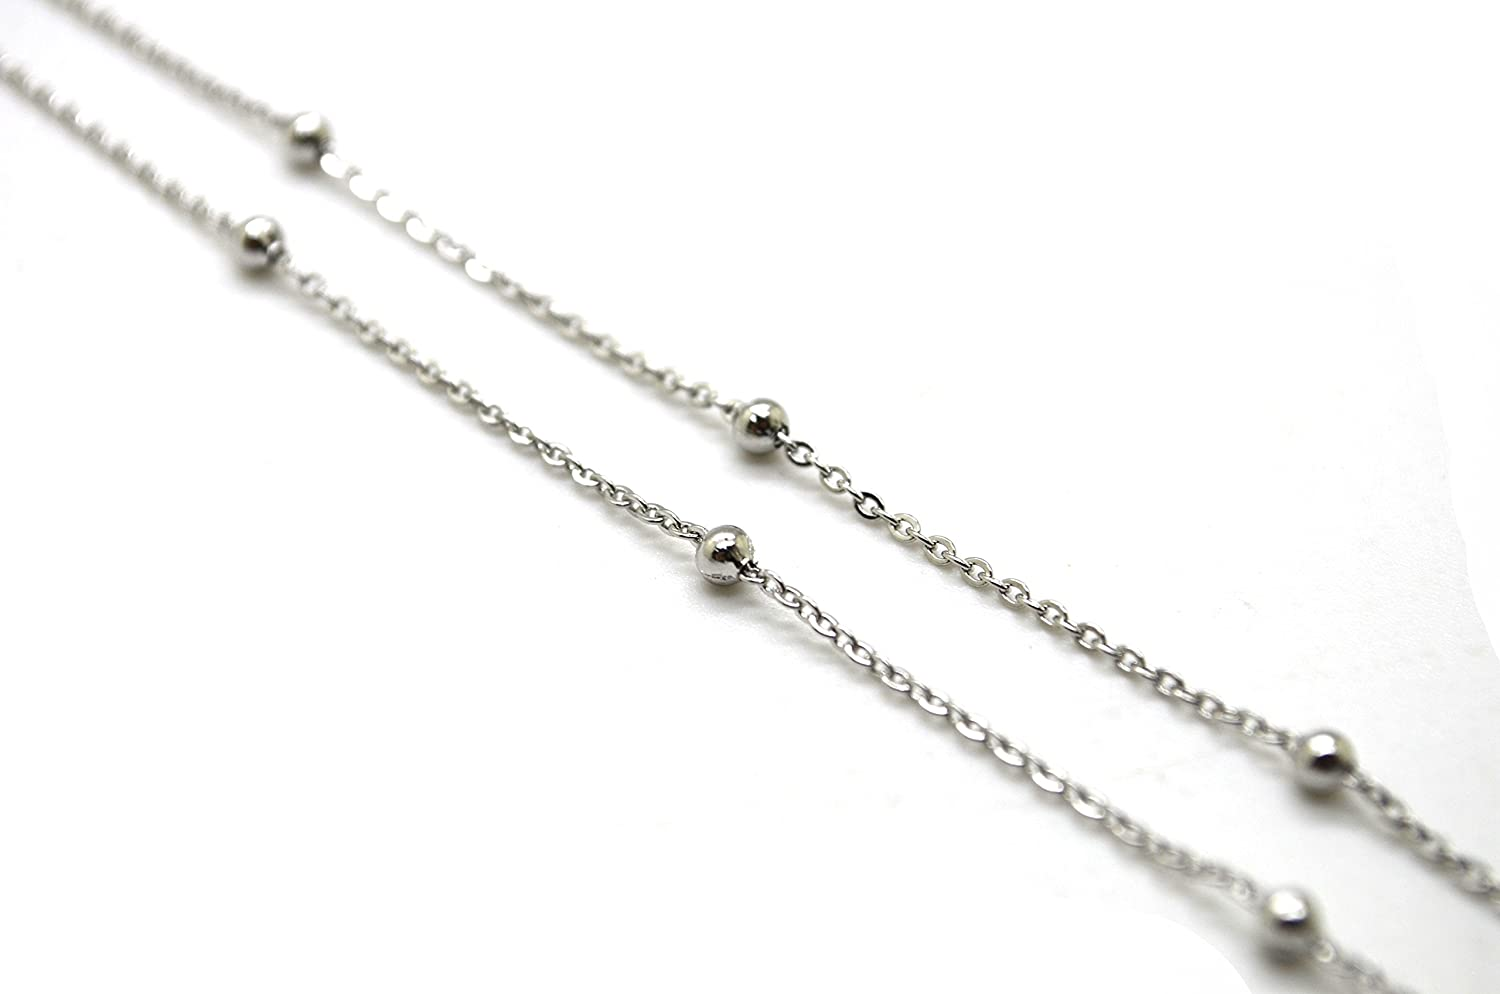 Millardo Jewelry Basic Collections 1.2mm Wide 18K White Gold Ultra Thin Cable Chain With Beads Chain Necklace 18K White Gold - 22 Inches